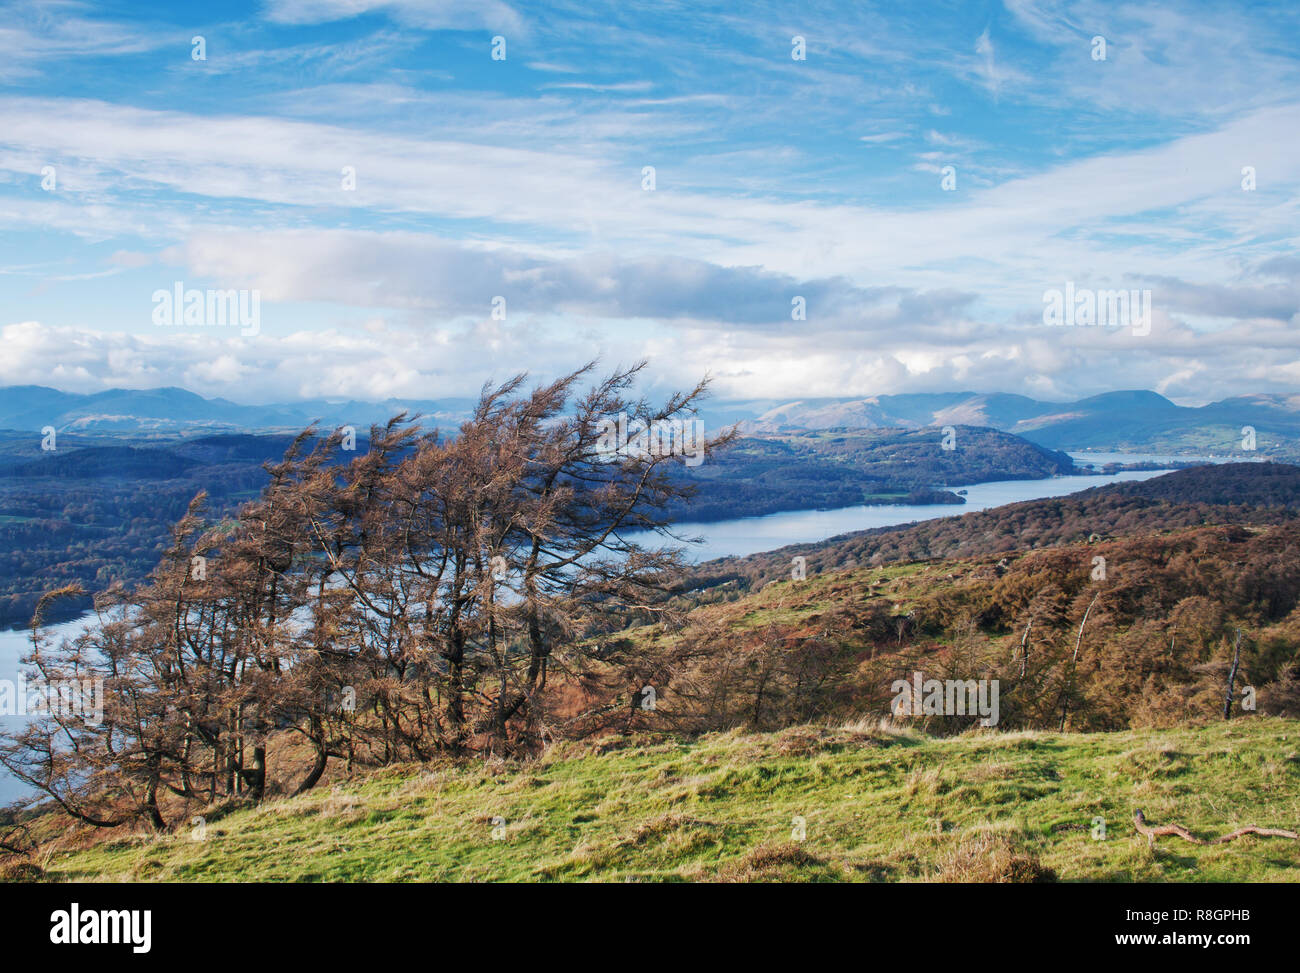 Distant Lakeland skies and fells, viewed from the slopes of Gummers How - Stock Image